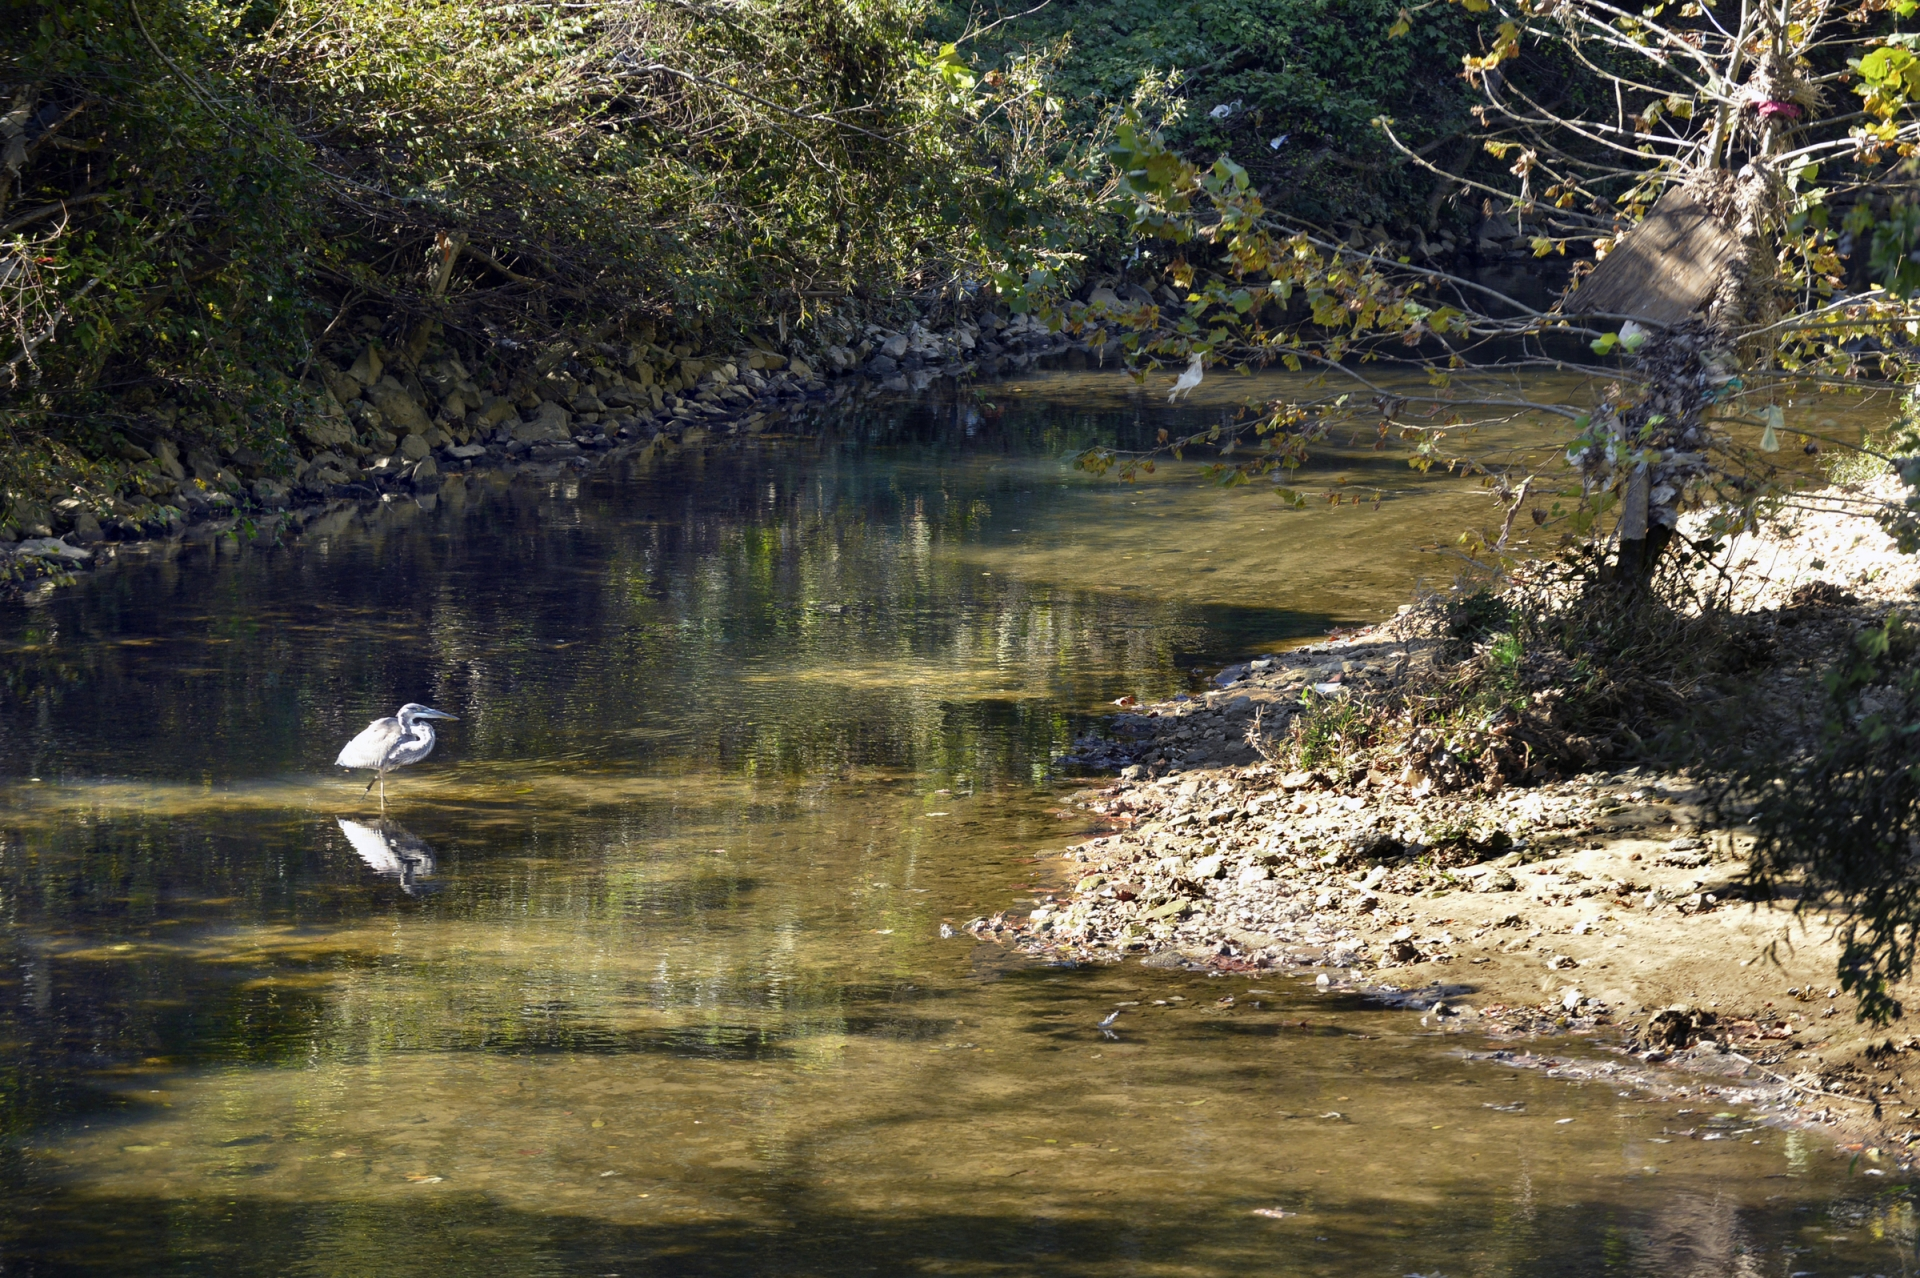 Wildlife still frequent the creek, such as this blue heron, visible from the footbridge in Clanton Park. Photo: Nancy Pierce